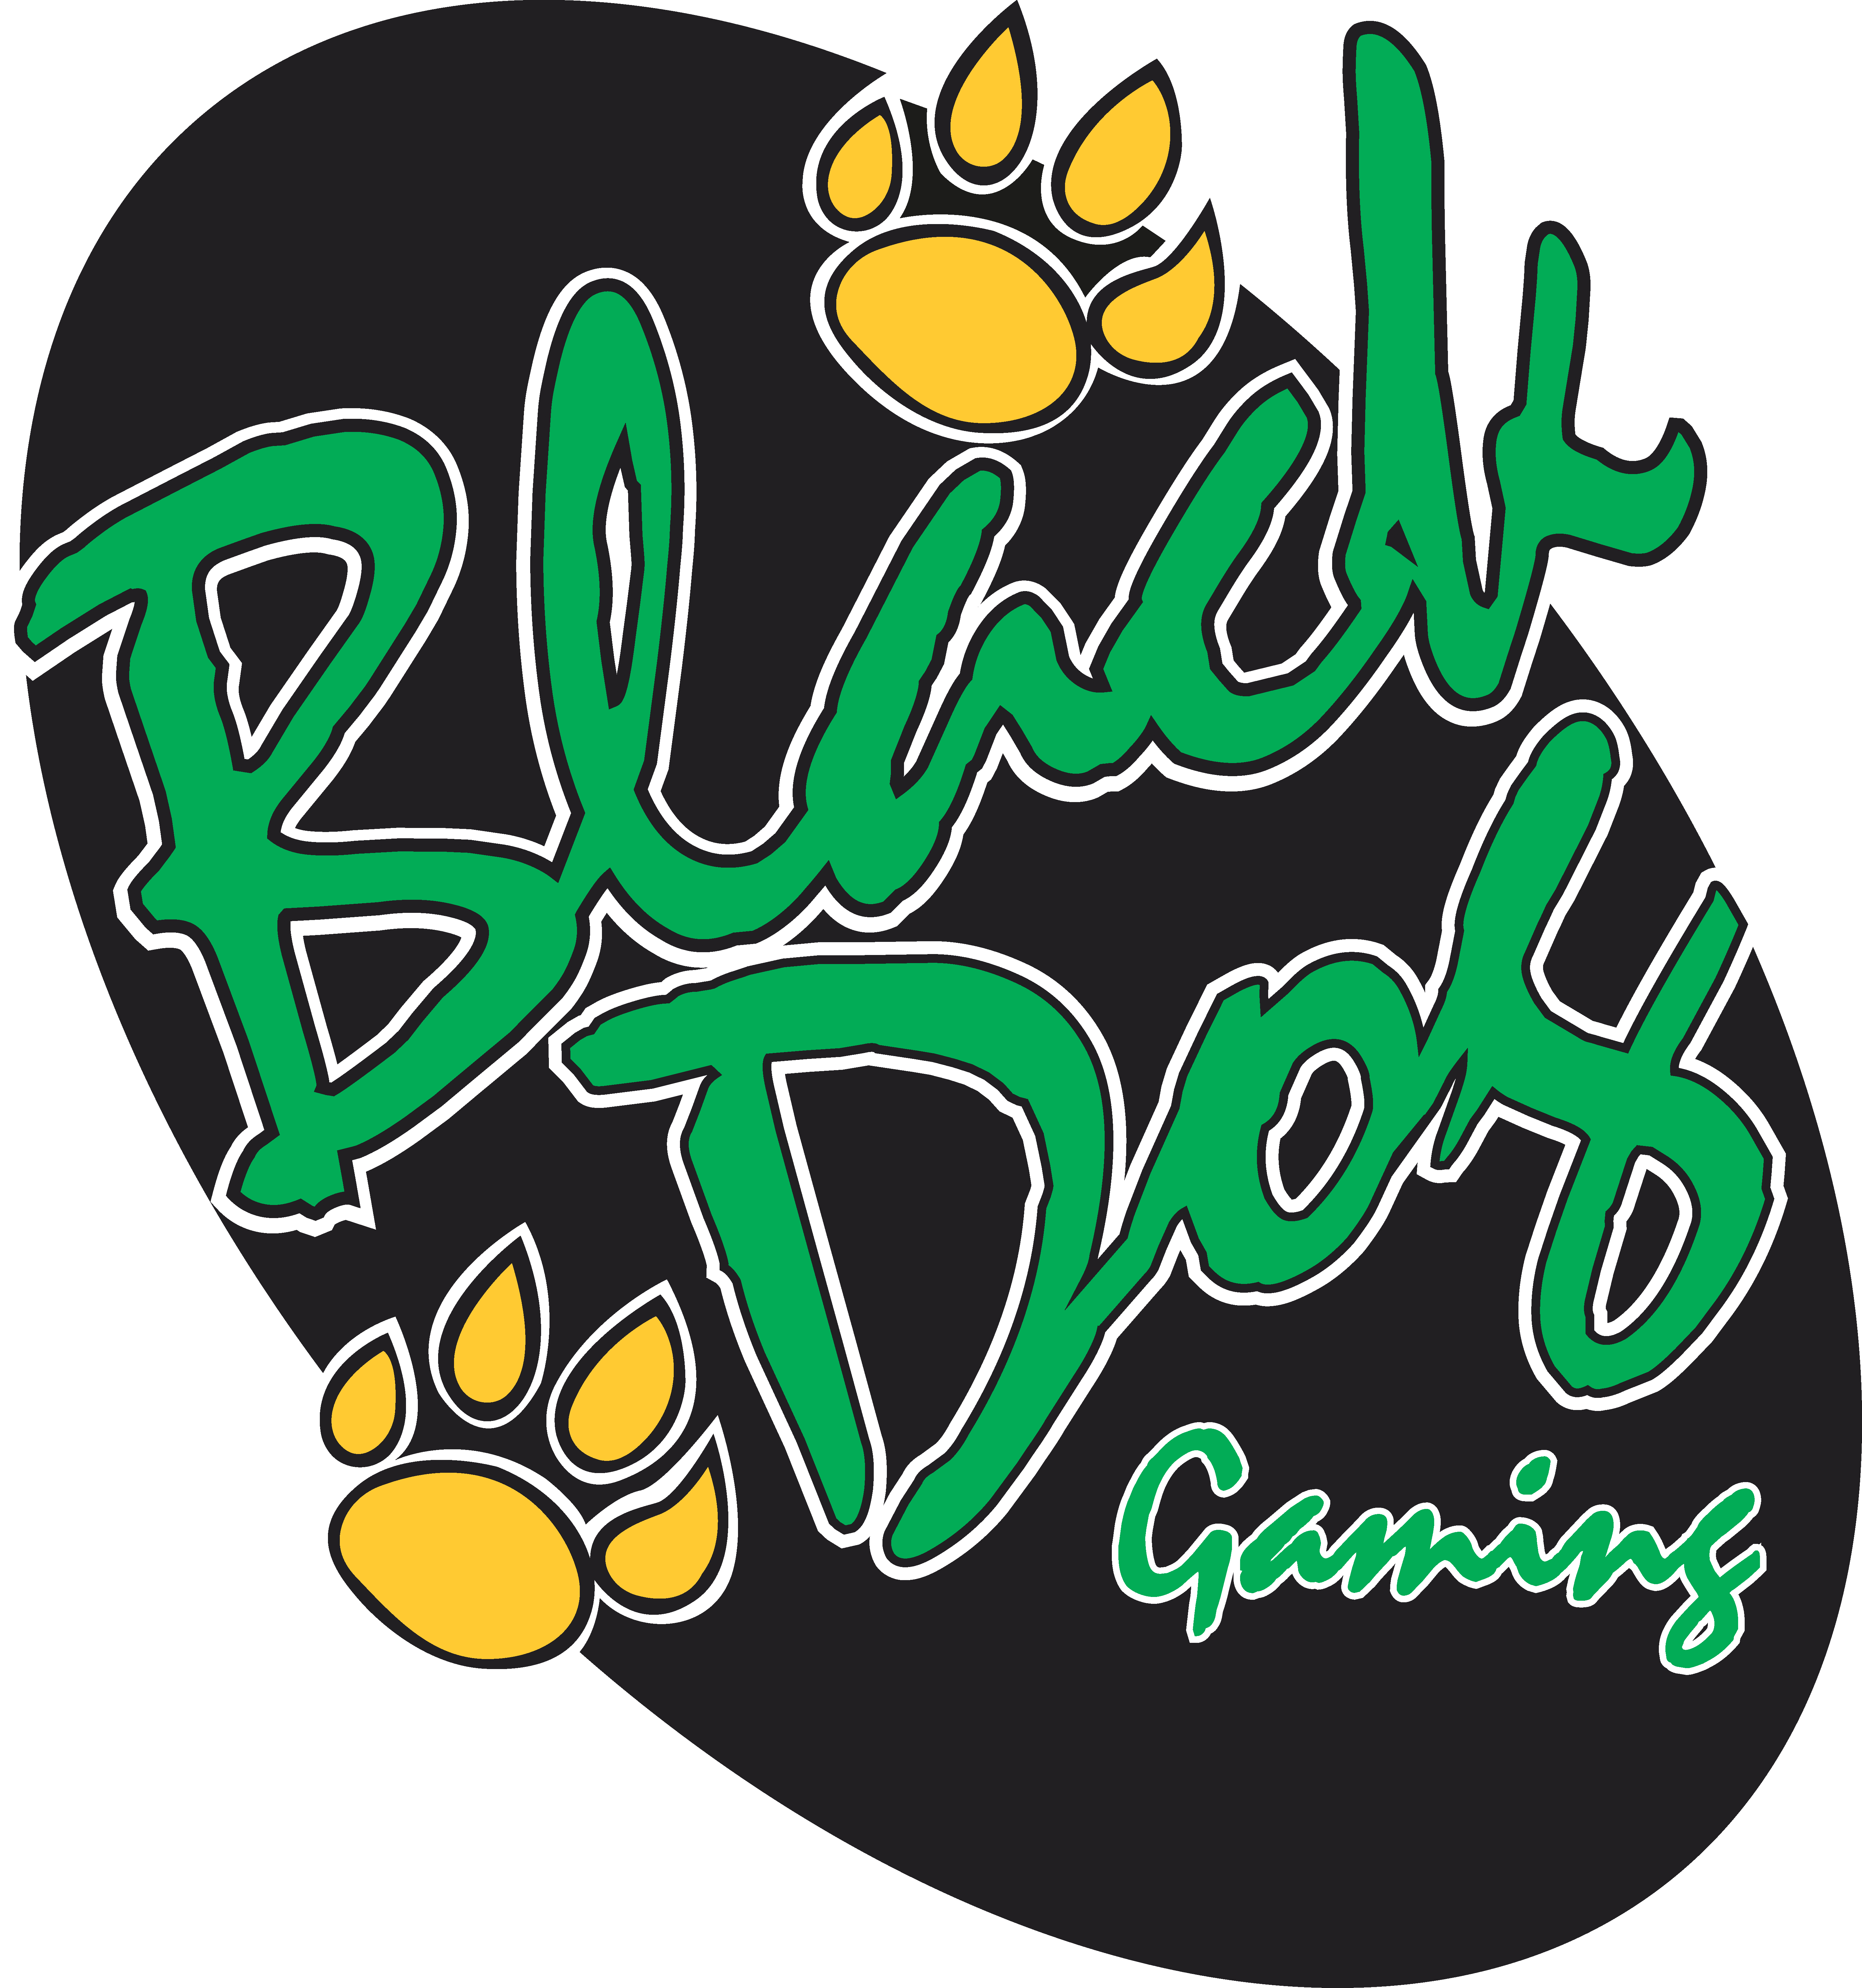 Black Dog Gaming